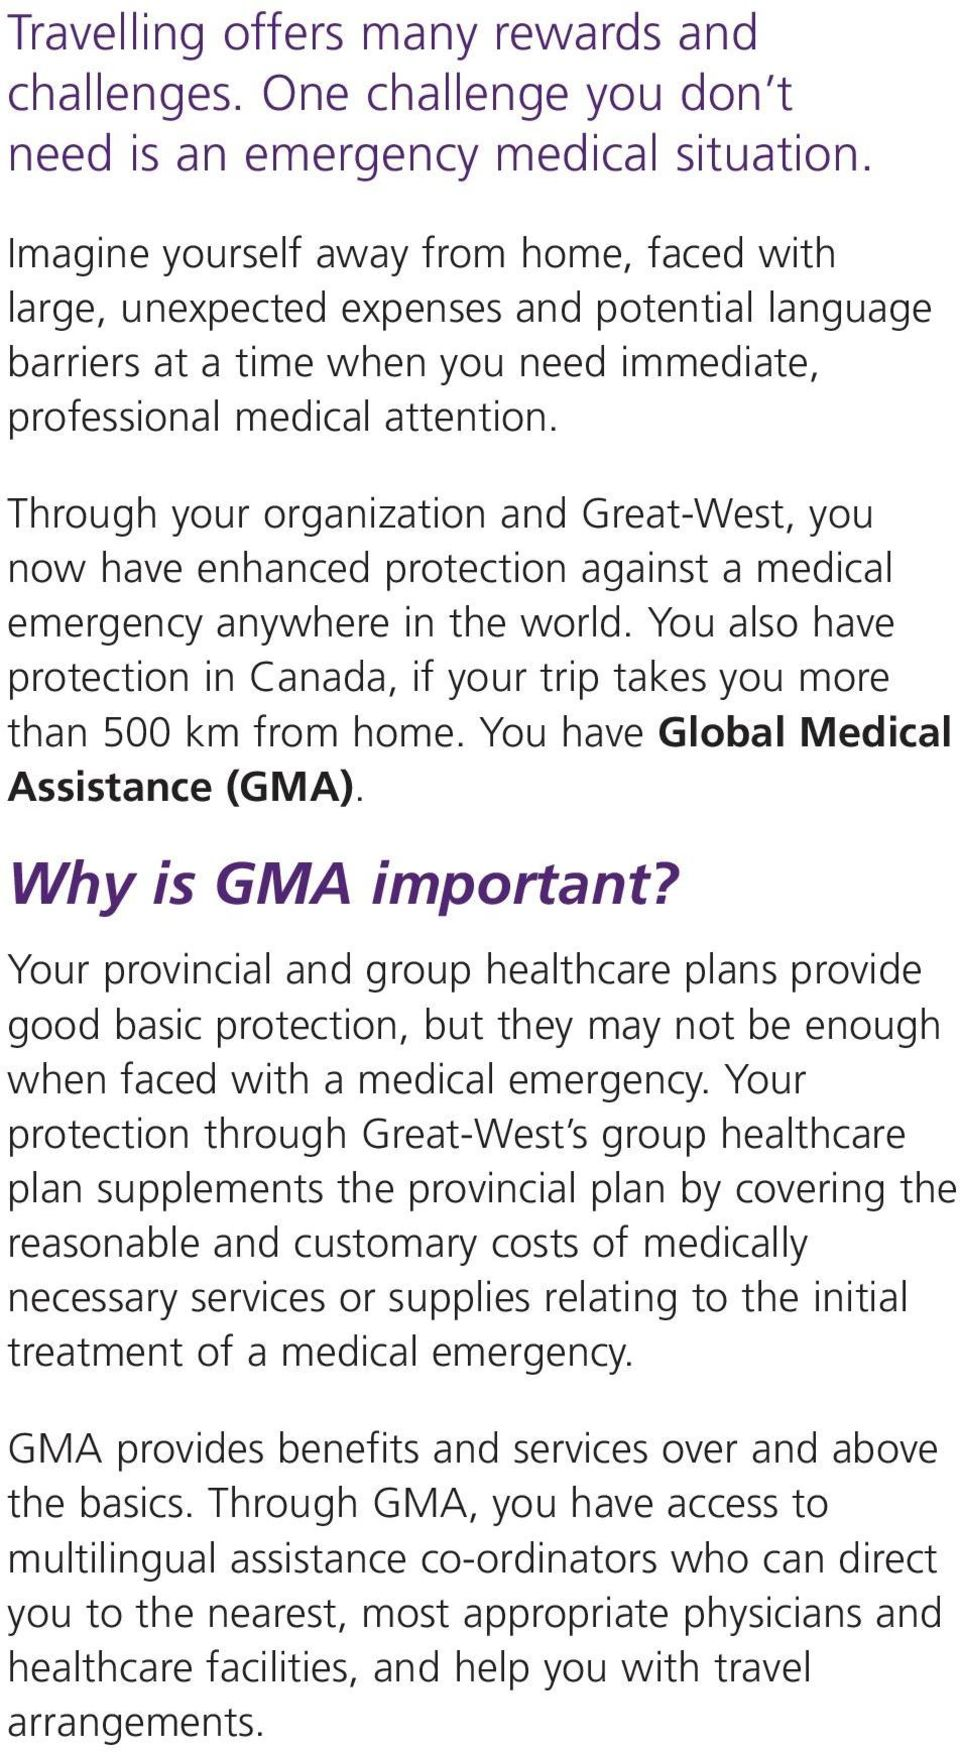 Through your organization and Great-West, you now have enhanced protection against a medical emergency anywhere in the world.